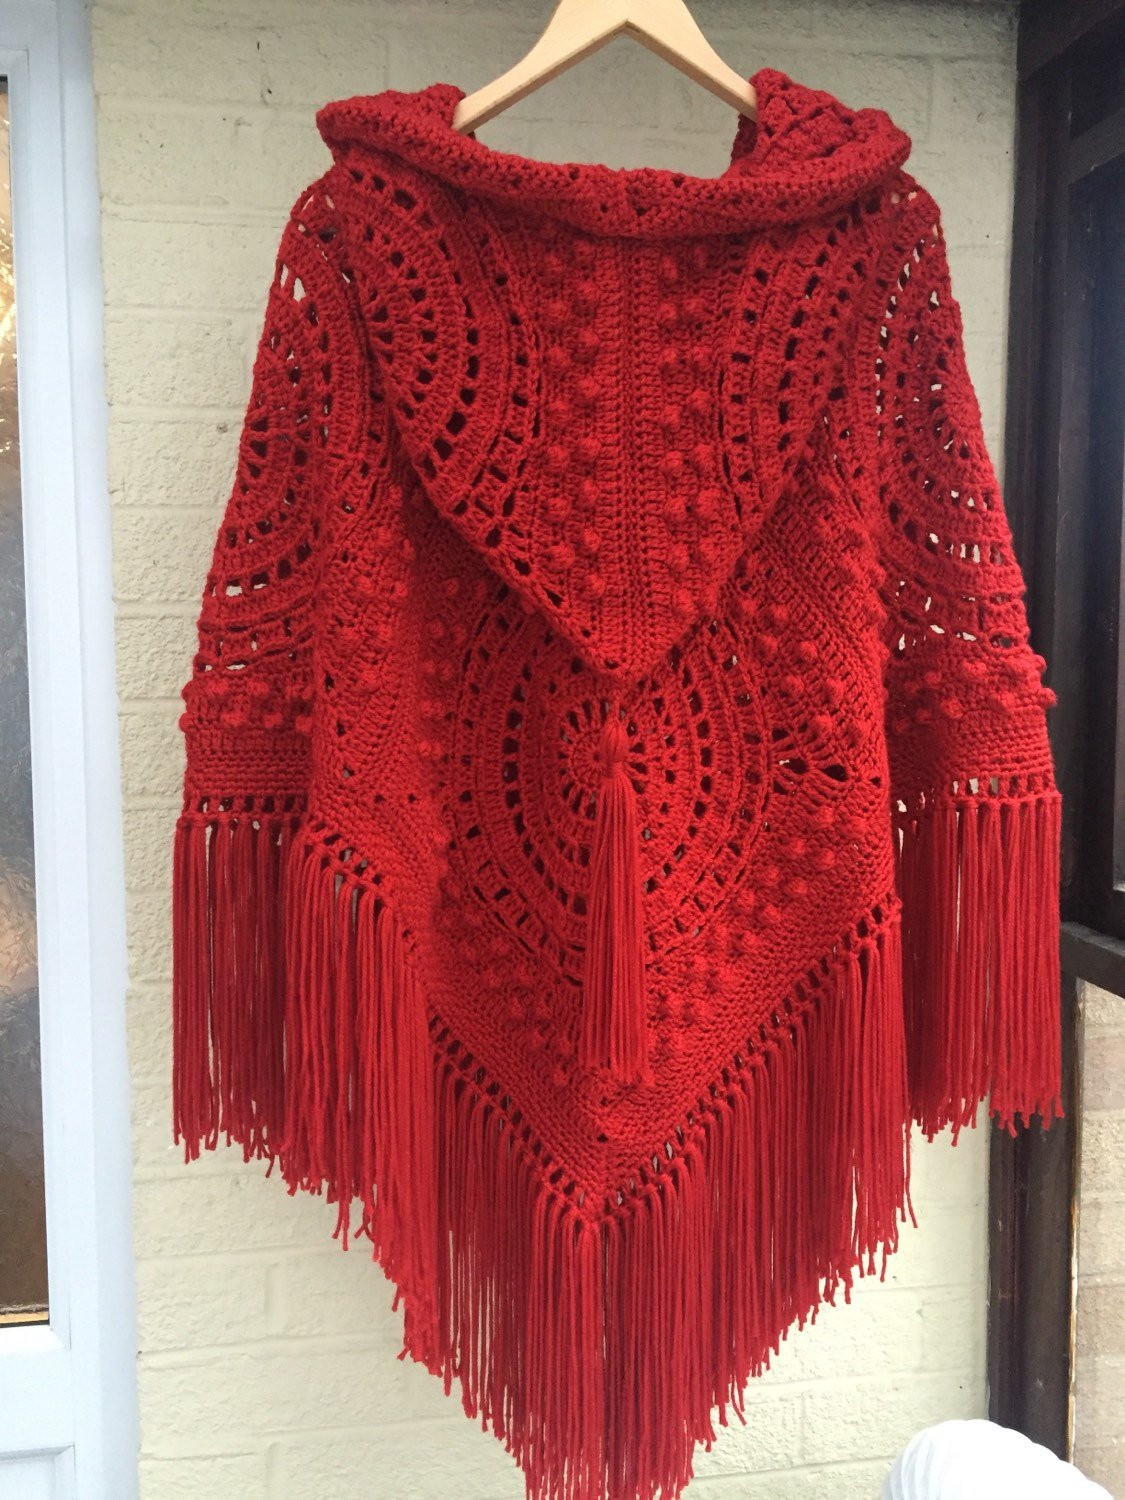 Ponchos A Crochet Fresh Handmade Crochet Hooded Poncho with Fringe and Tassel In Of Fresh 46 Photos Ponchos A Crochet